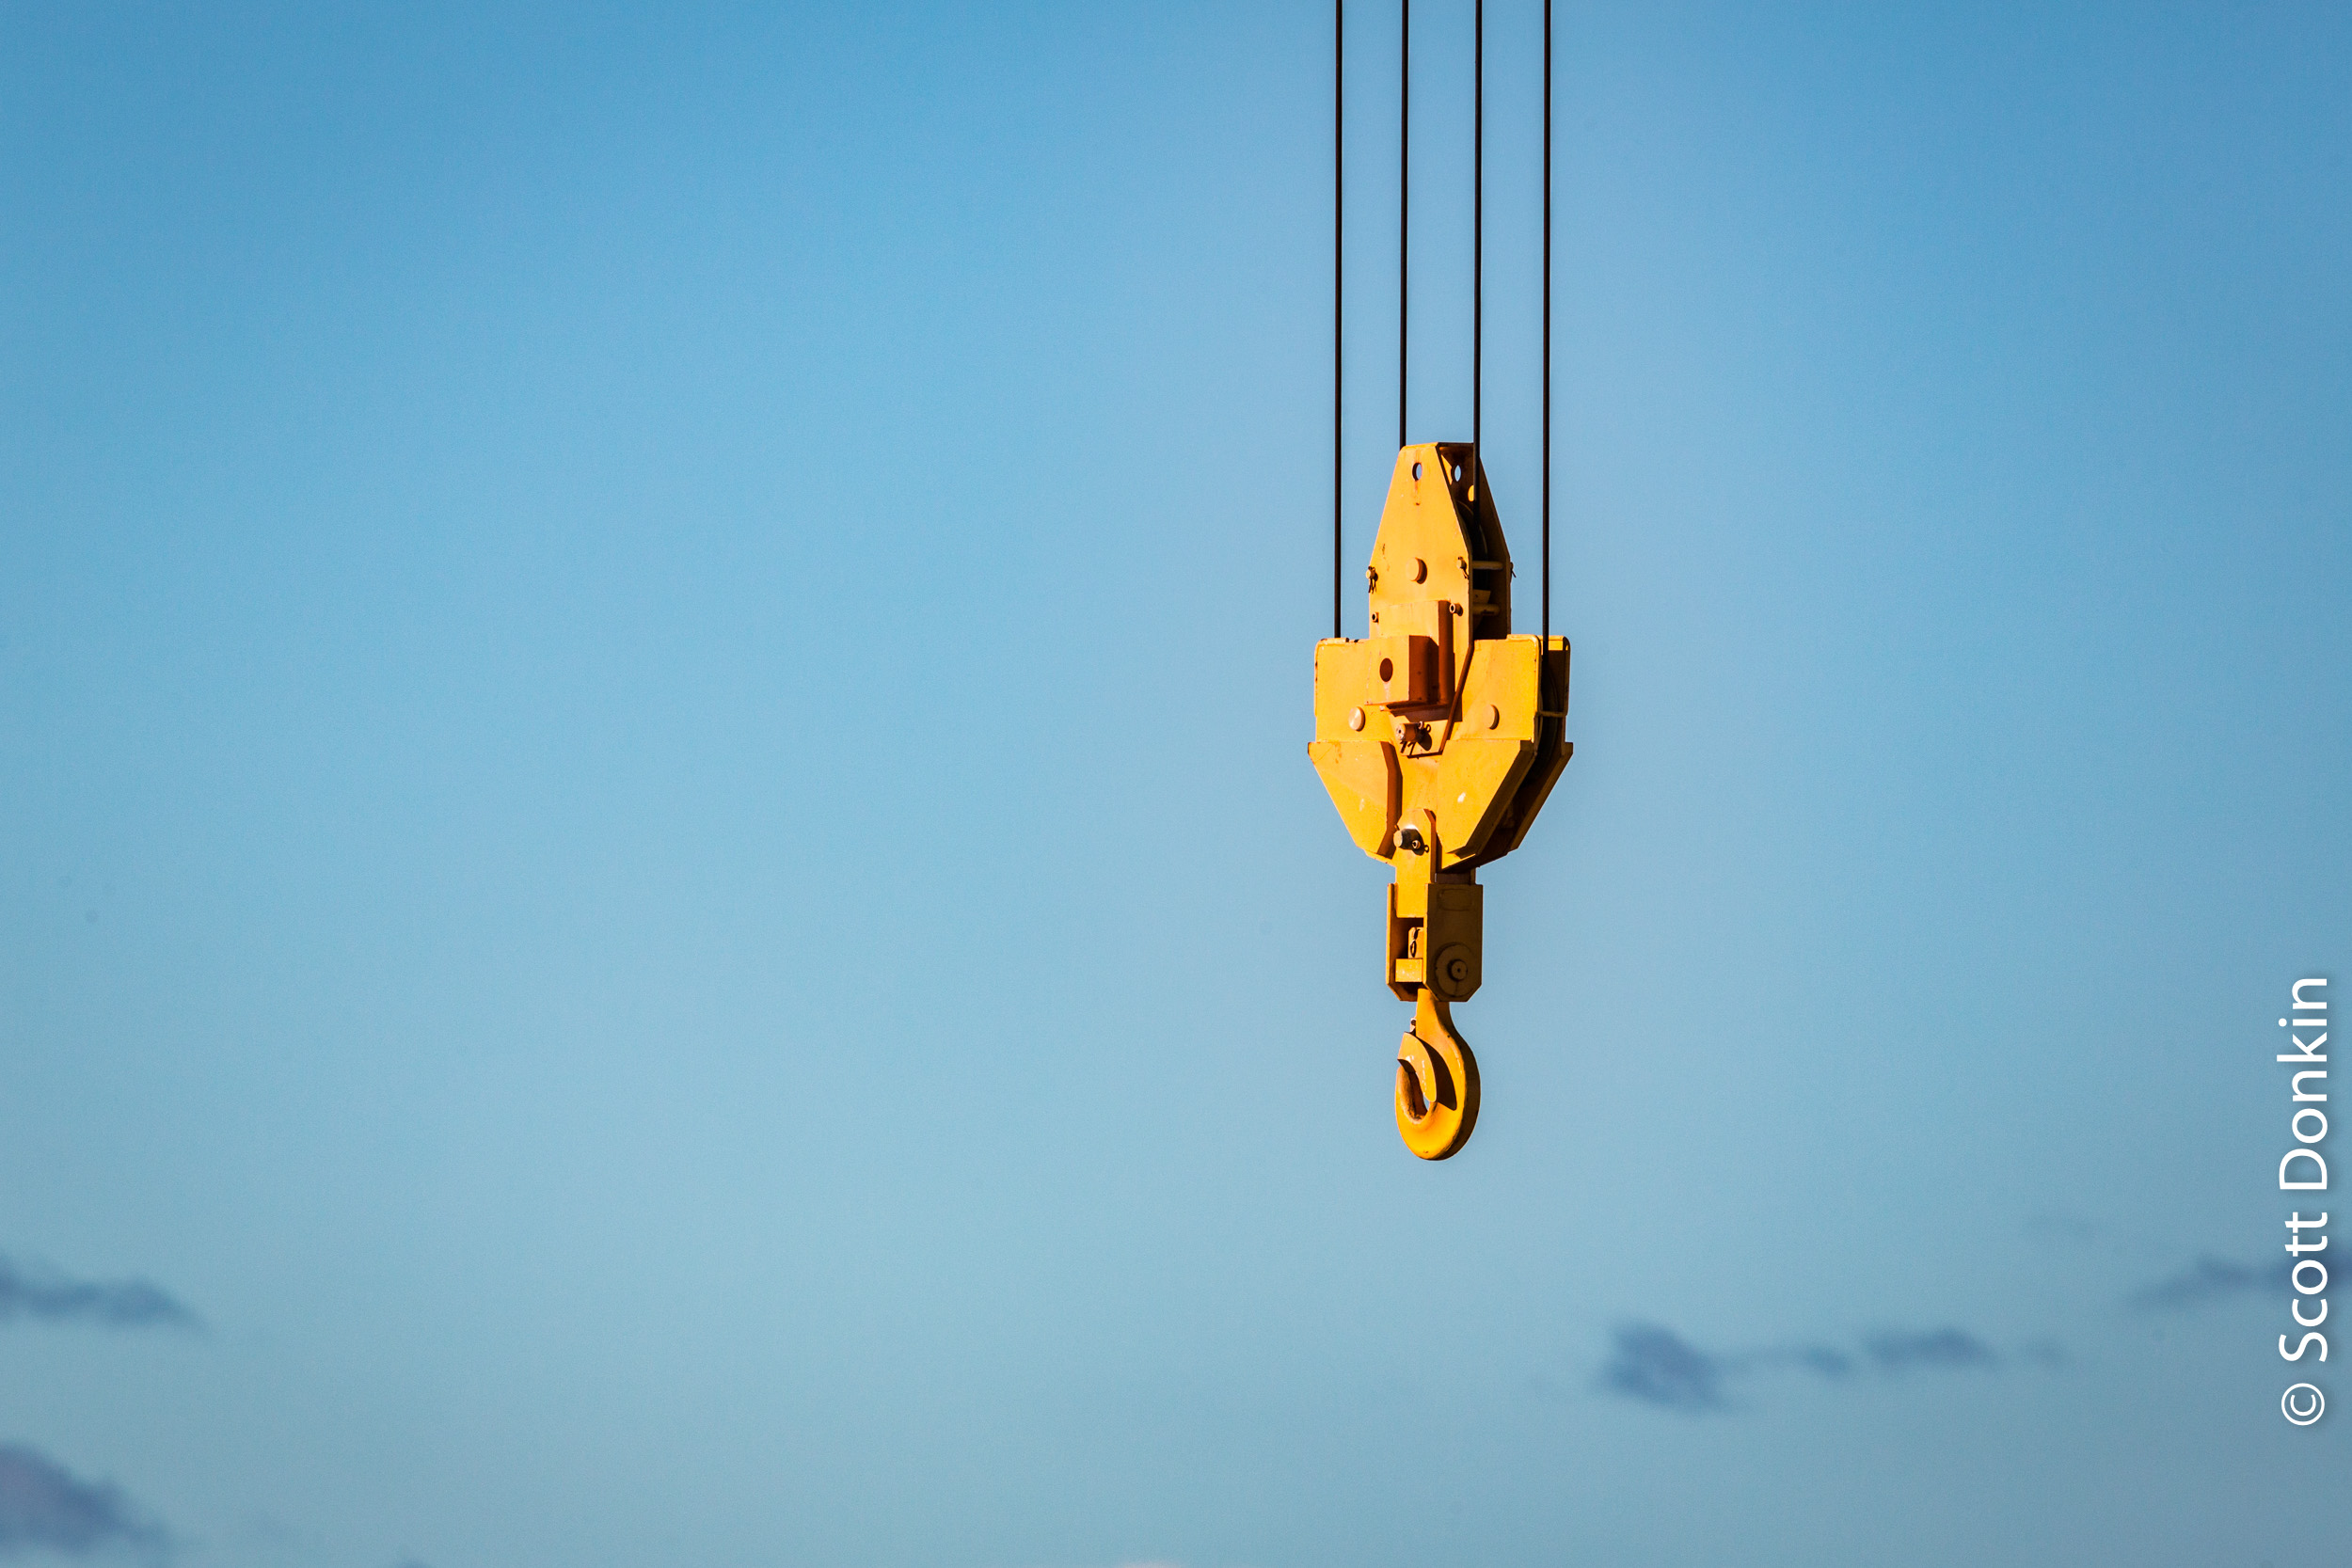 Lifting hook. Construction site. Main Beach, Queensland.